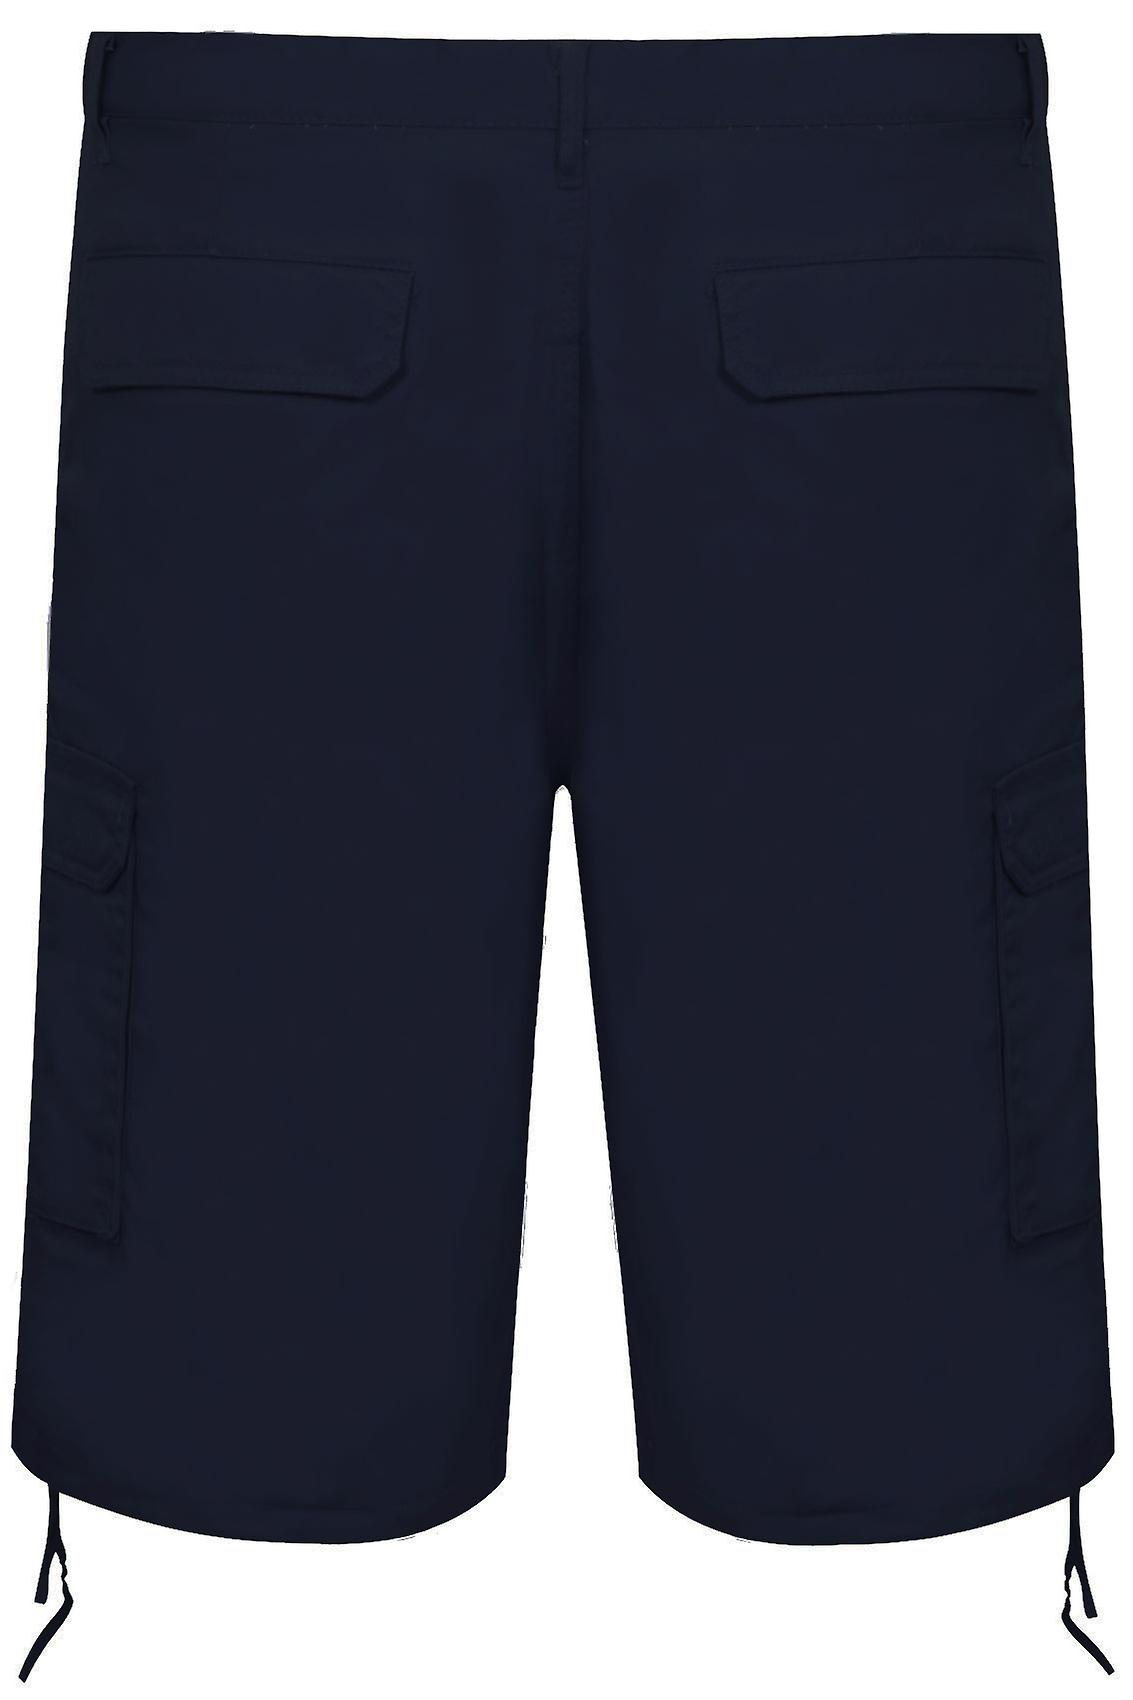 NOIZ Navy Cotton Cargo Shorts With Pockets